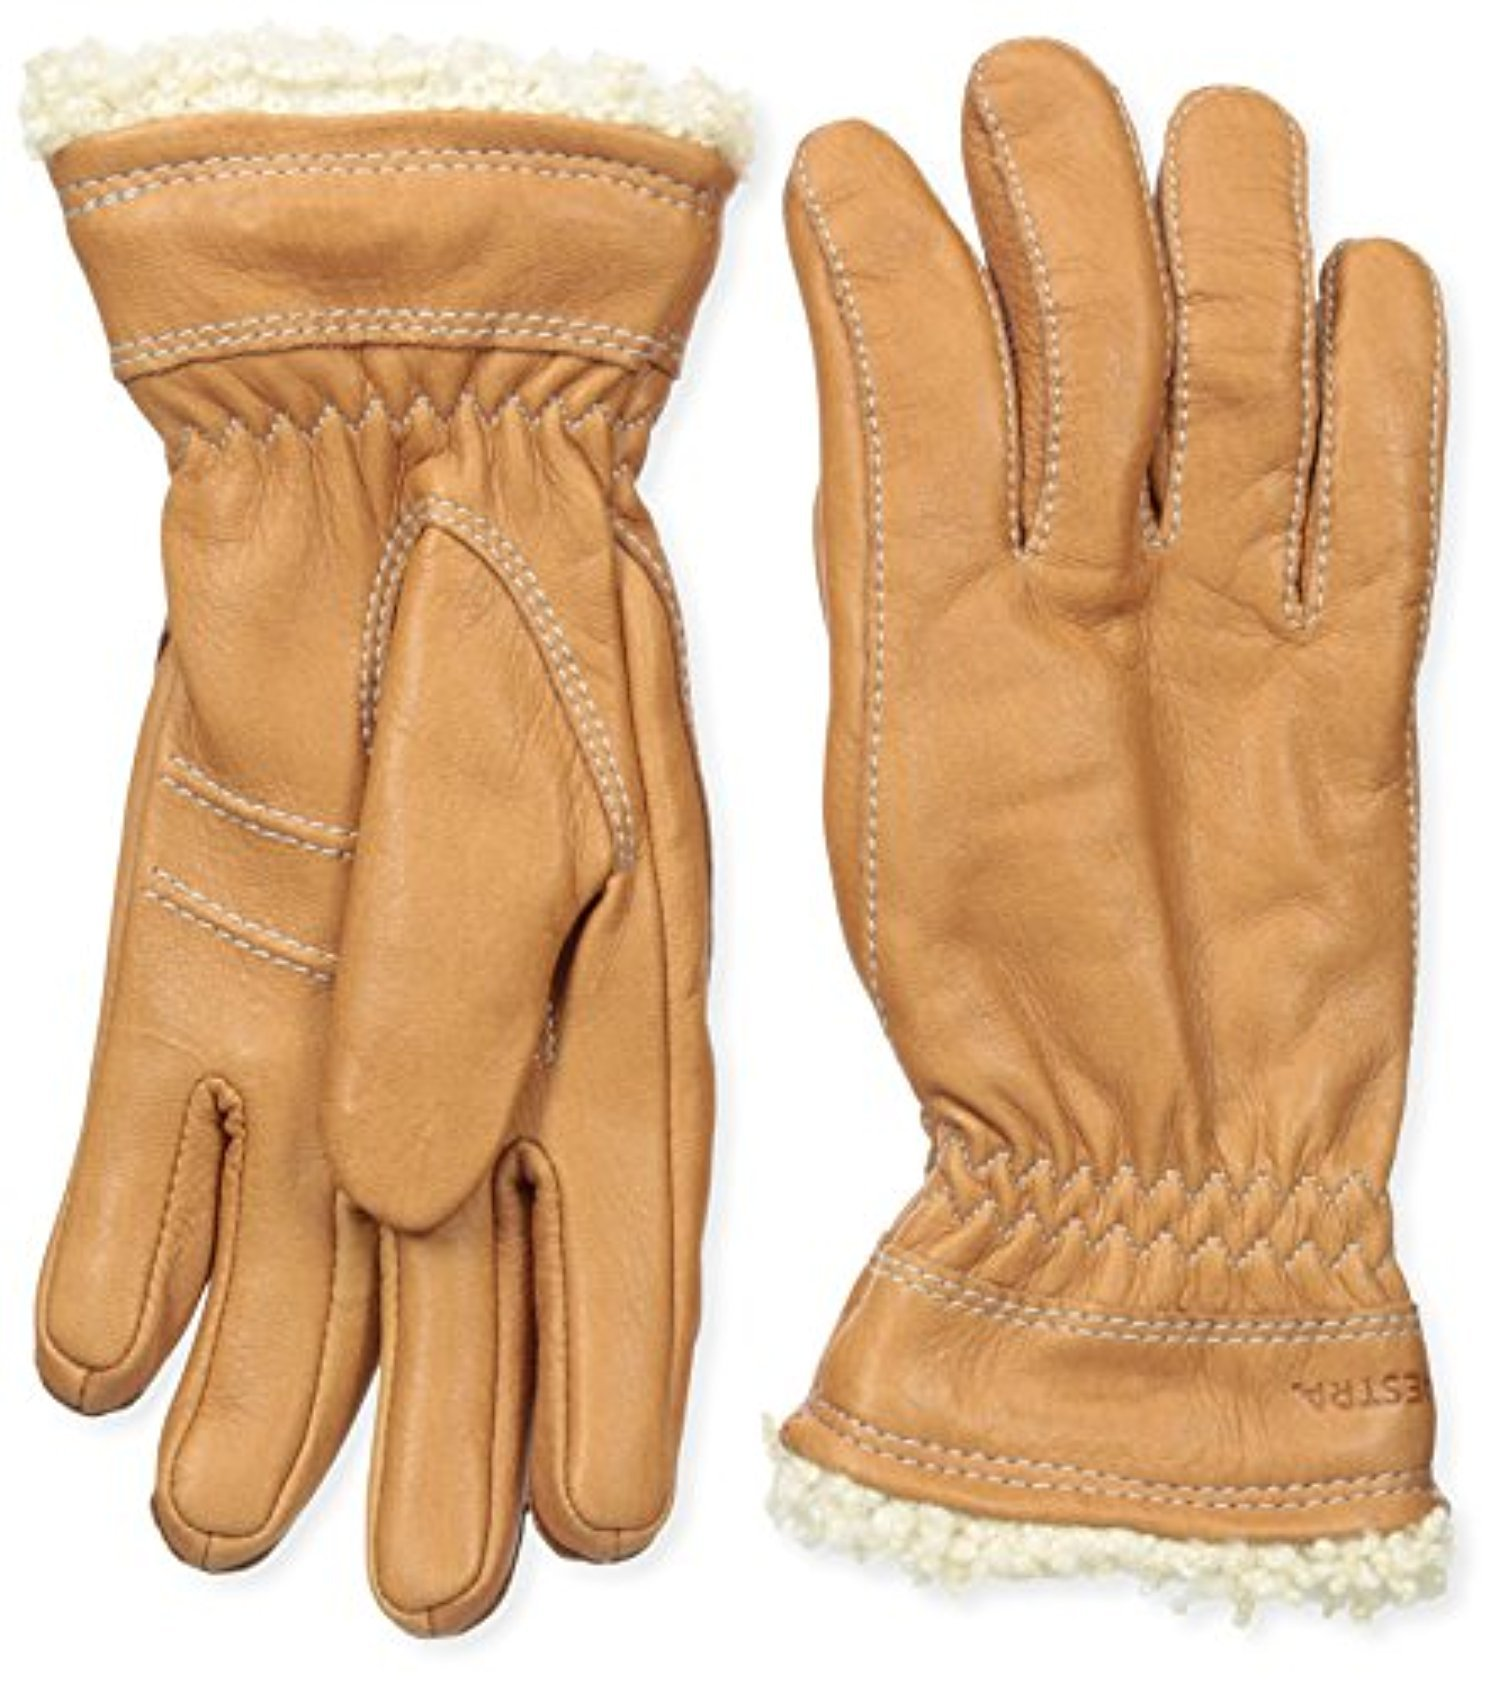 Hestra Women's Deerskin Primaloft Gloves Cork 6 & Knit Cap Bundle by Hestra